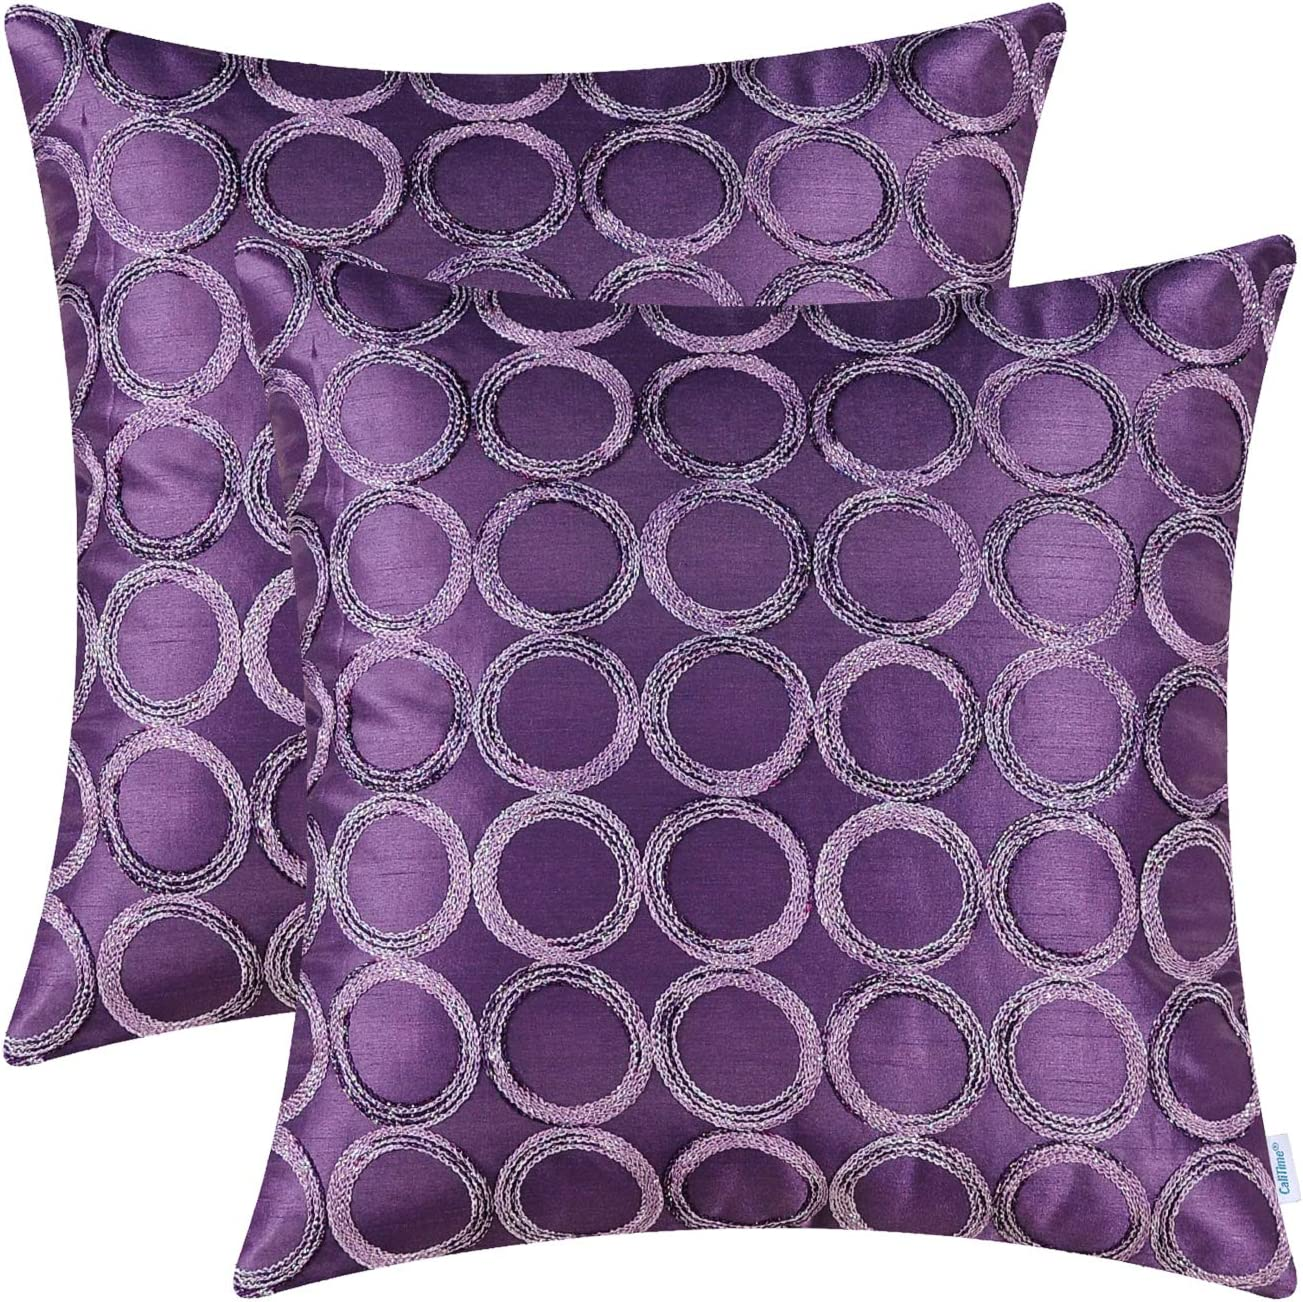 CaliTime Pack of 2 Cushion Covers Throw Pillow Cases Shells for Sofa Couch Home Decoration 18 X 18 Inches Modern Circles Rings Geometric Chain Embroidered Purple